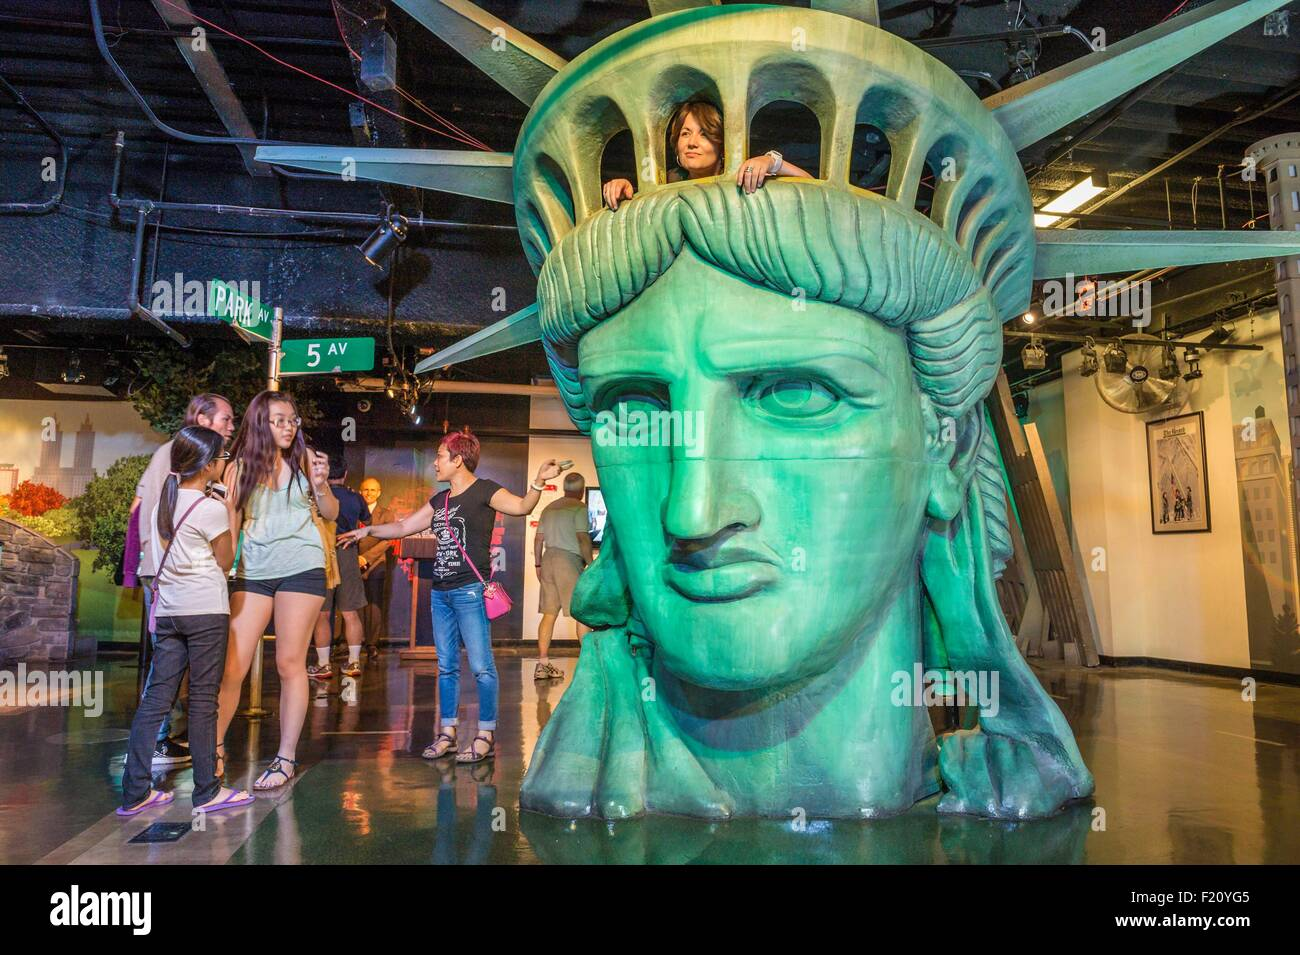 United States, New York City, Manhattan, Midtown, Madame Tussauds Wax Museum, reproduction of the Statue of Liberty's - Stock Image